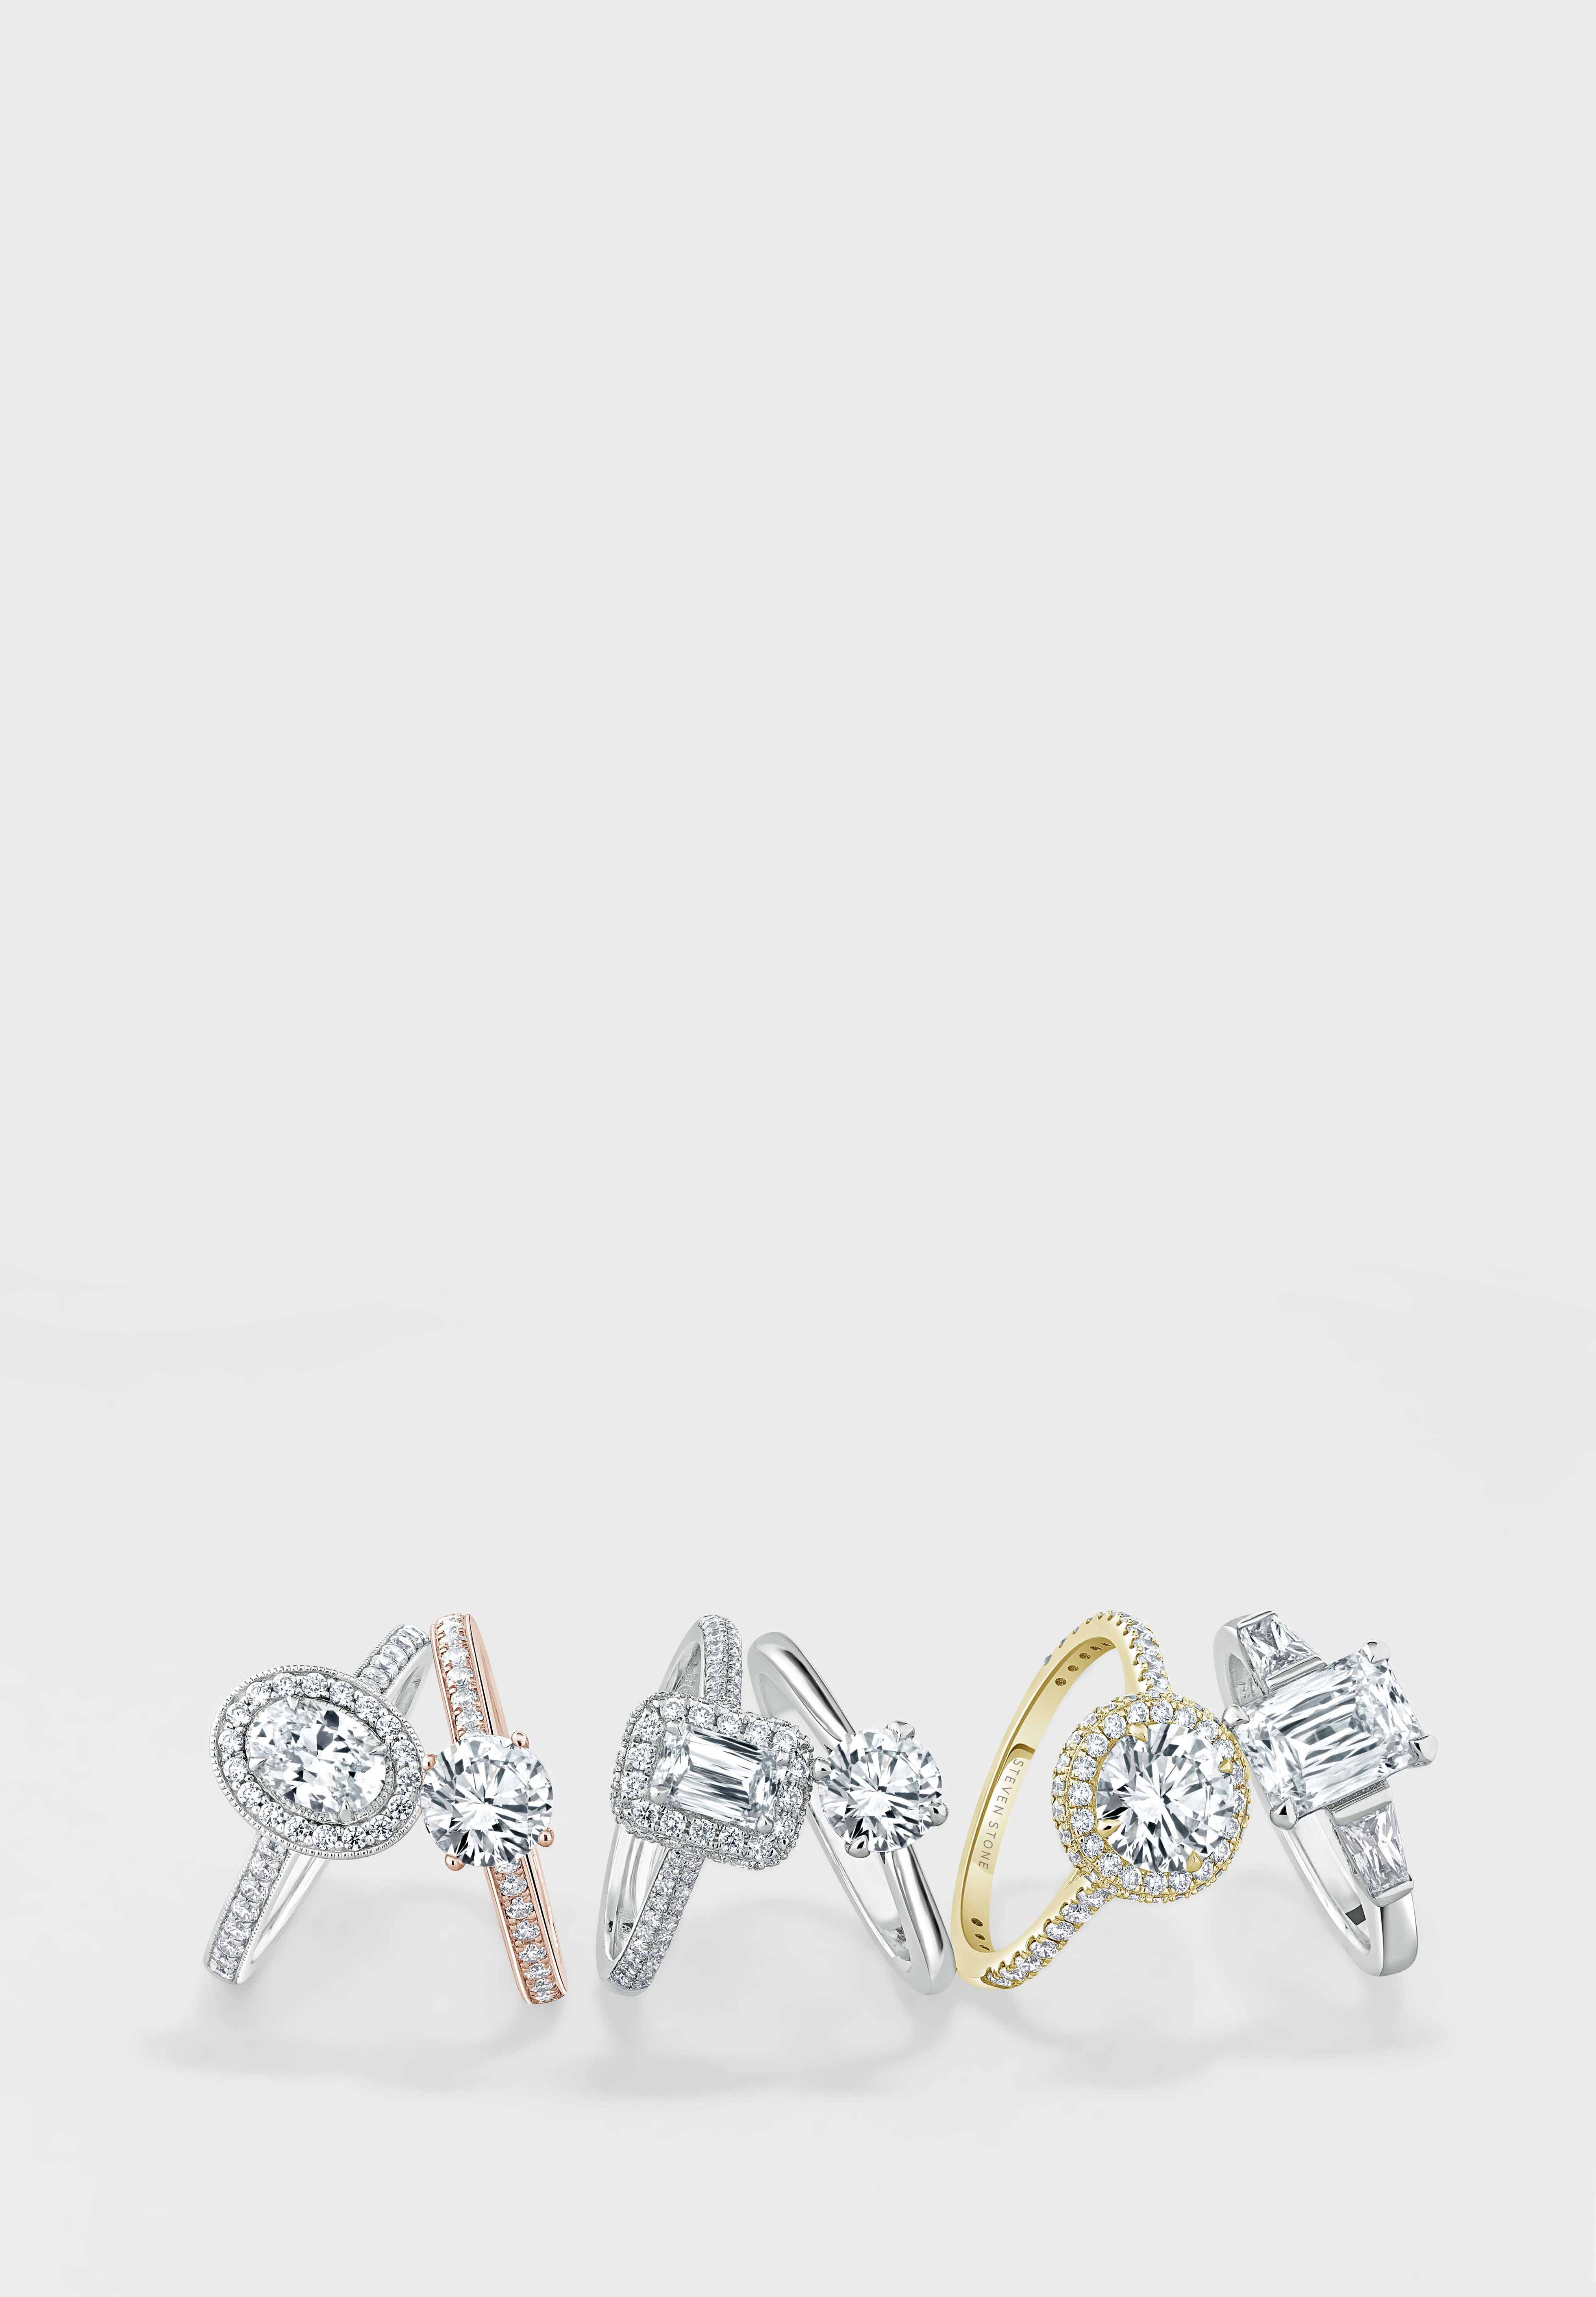 Yellow Gold Emerald Cut Engagement Rings - Steven Stone